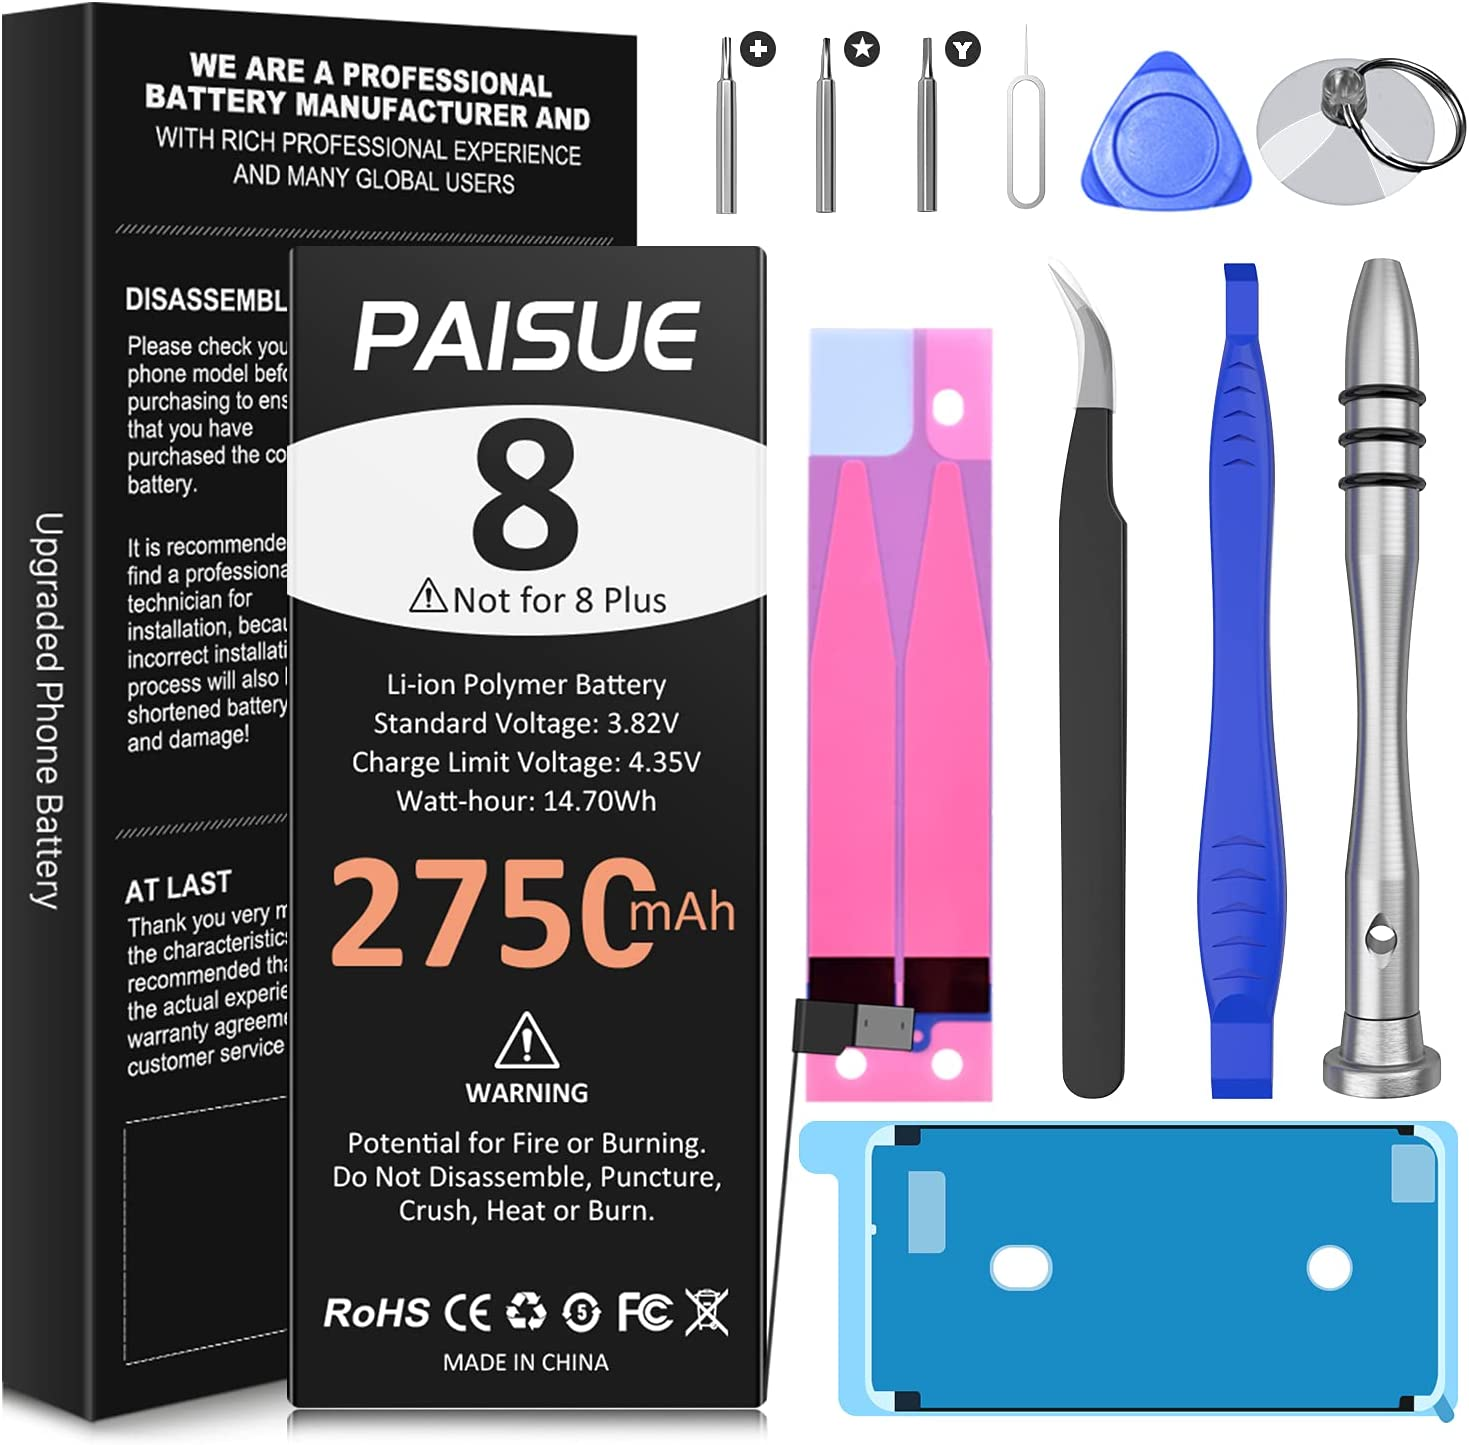 Battery for iPhone 8, Upgraded 2750mAh High Capacity Replacement Battery, New 0 Cycle Li-ion Battery for iPhone 8 Model A1863 A1905 A1906, with Complete Repair Tool Kit and Instruction